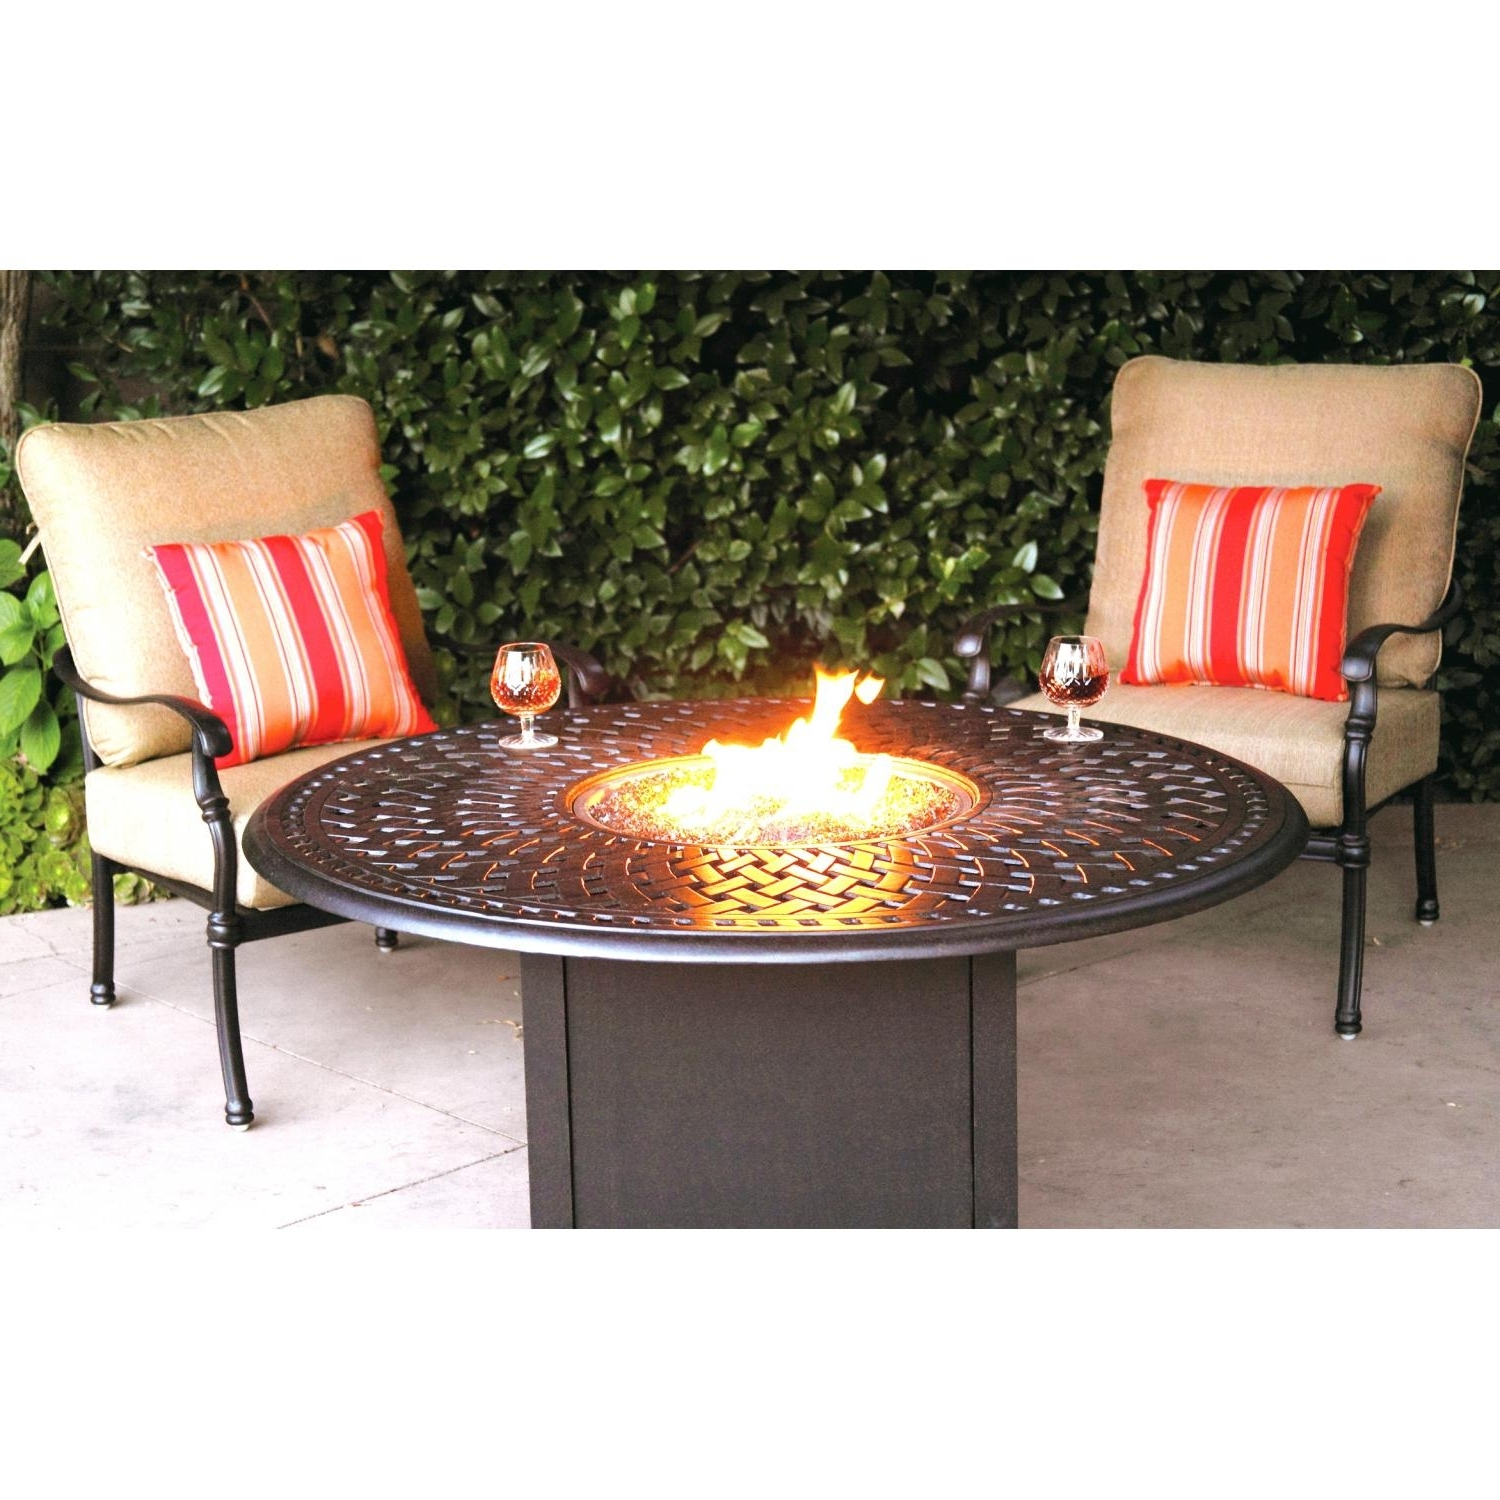 Famous Darlee Florence 3 Piece Aluminum Patio Fire Pit Seating Set Intended For Patio Furniture Conversation Sets With Fire Pit (View 9 of 15)